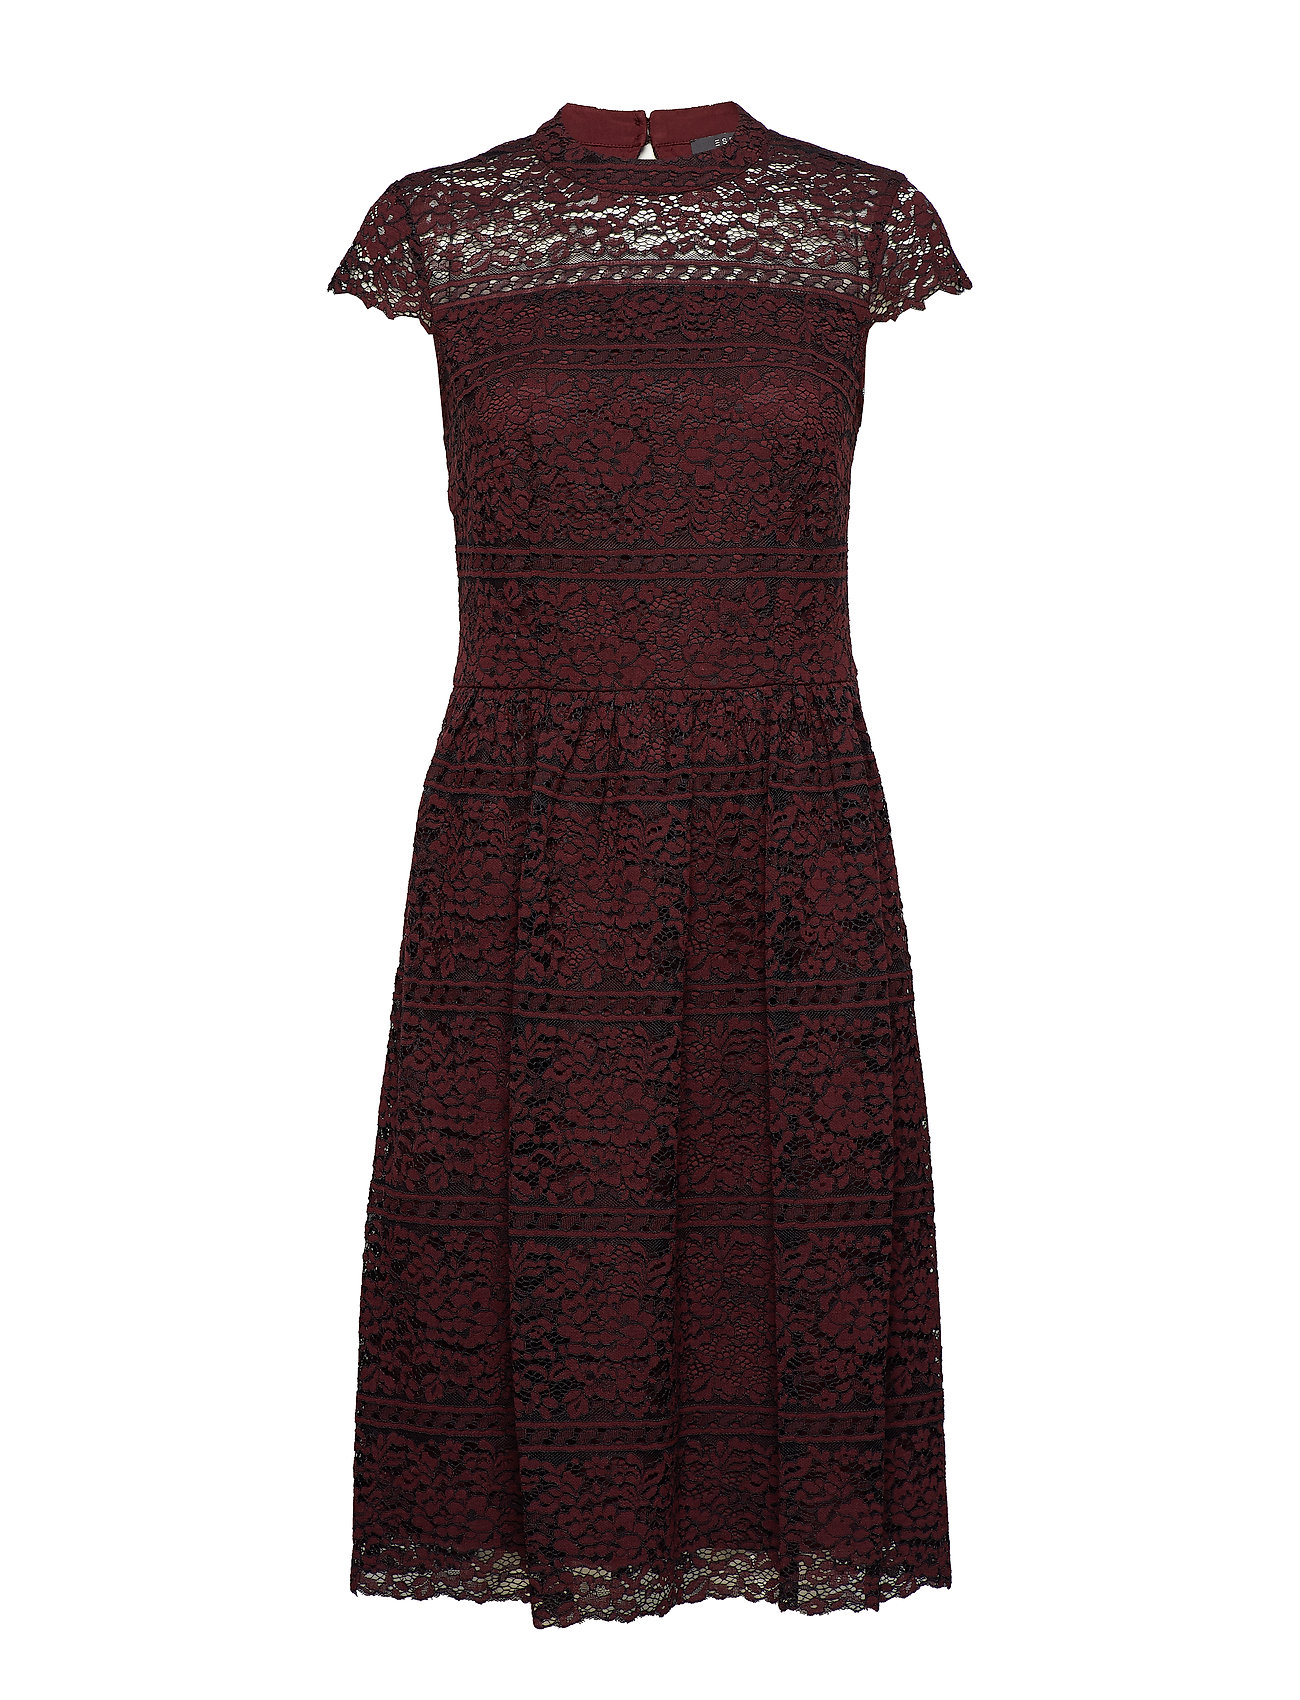 Esprit Collection Dresses light woven - BORDEAUX RED